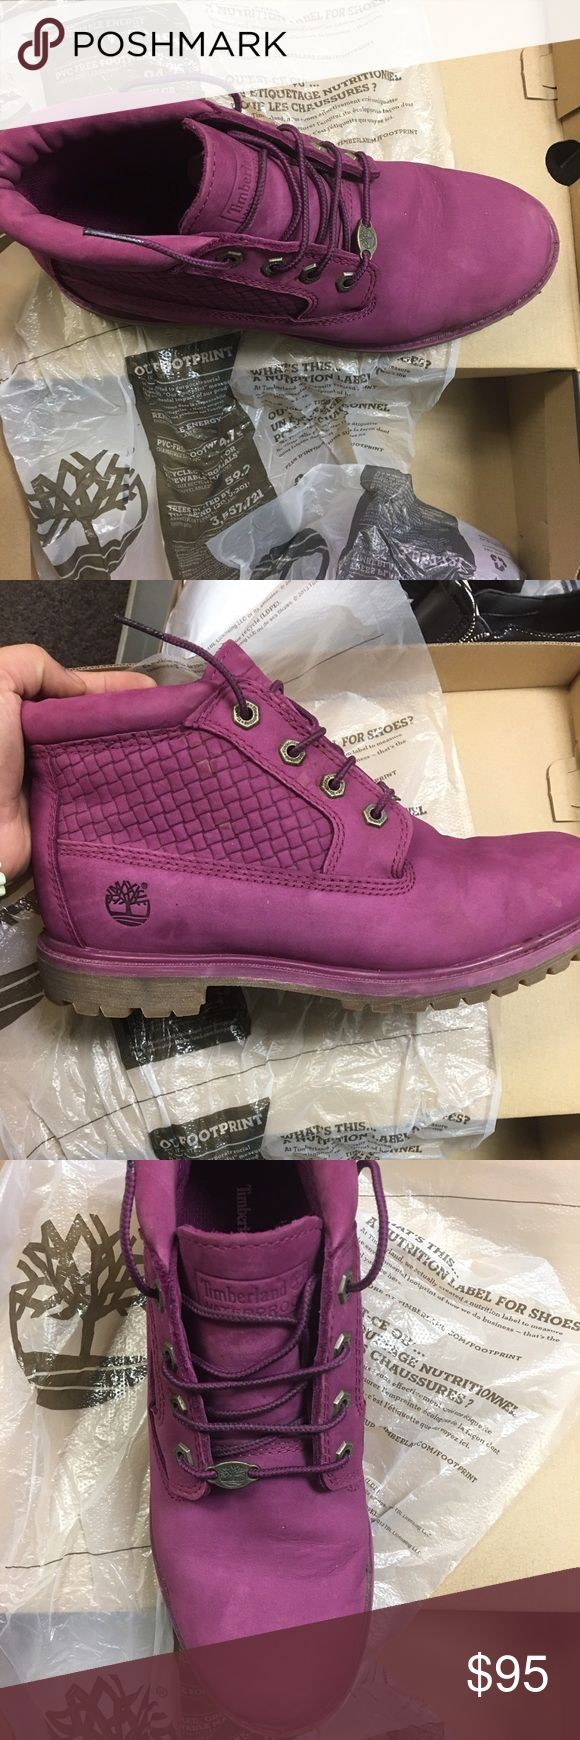 Women Timberland Boots Size 9 R purple color used couple time, it has a box Timberland Shoes Ankle Boots & Booties